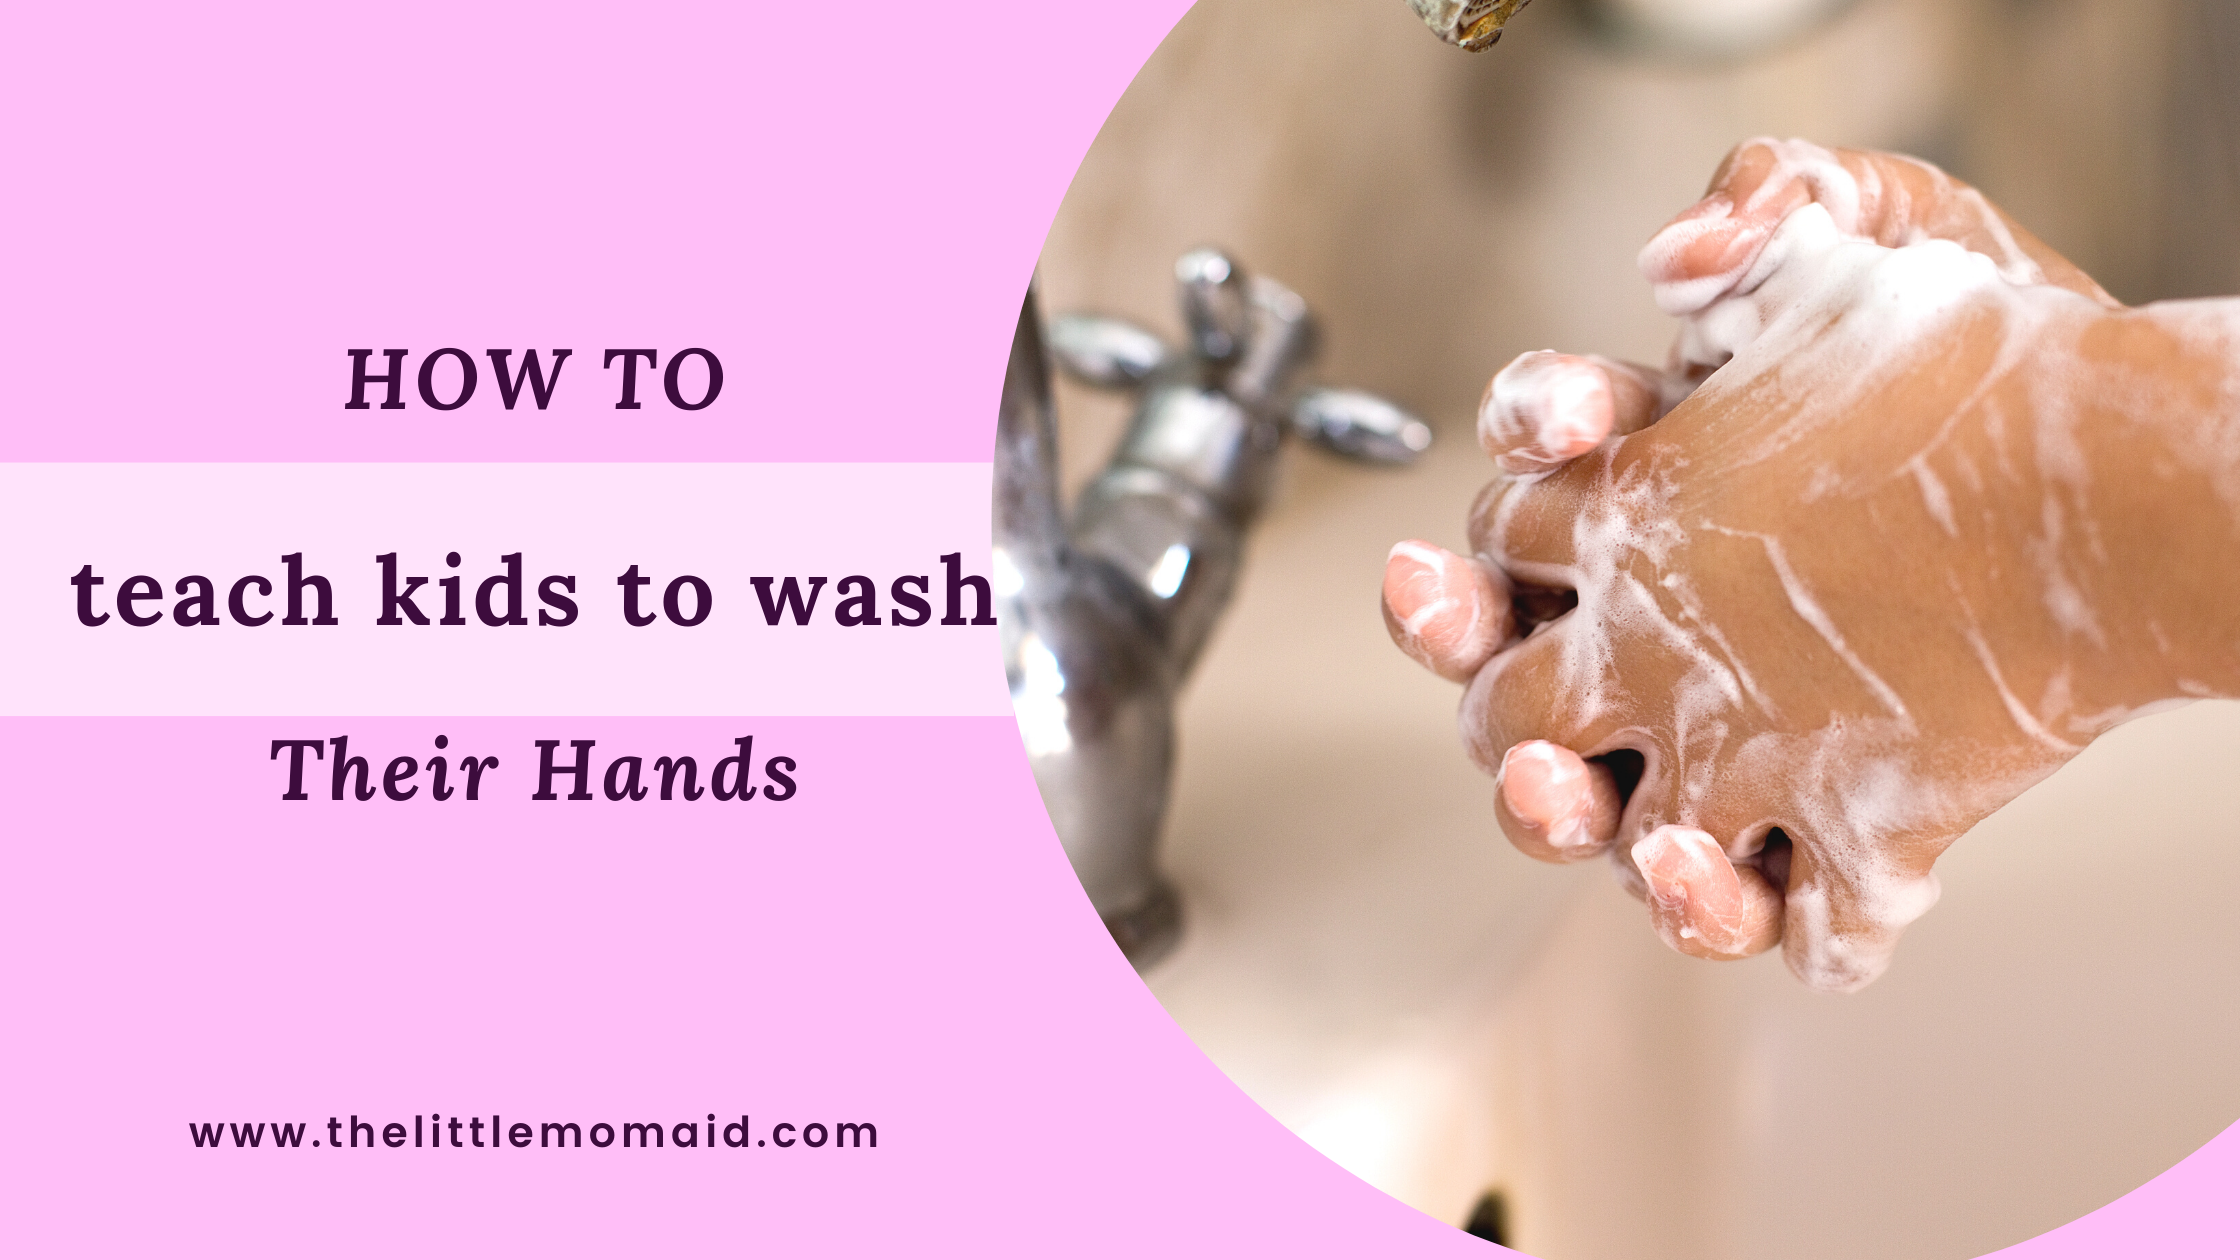 how to teach kids to wash their hands properly